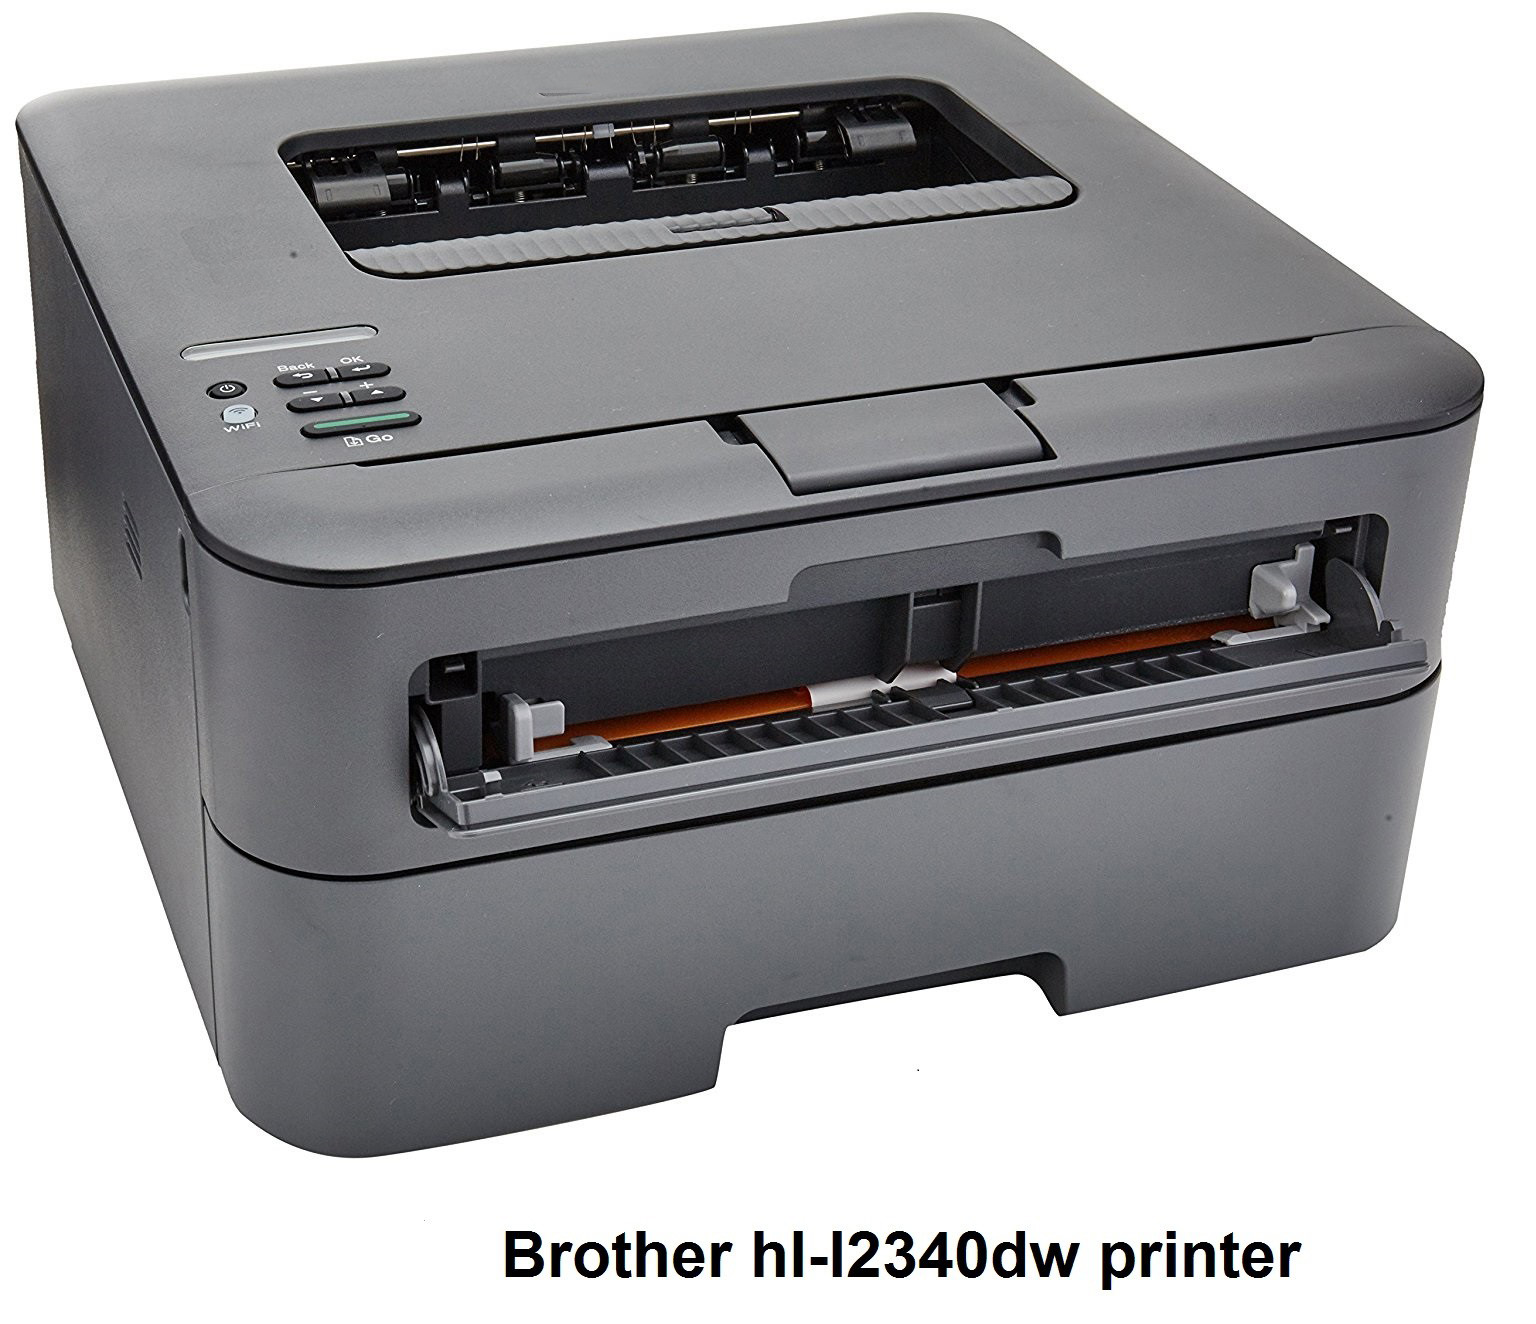 Why My Brother HL-l2340dw Printer Can't Airprint from Apple